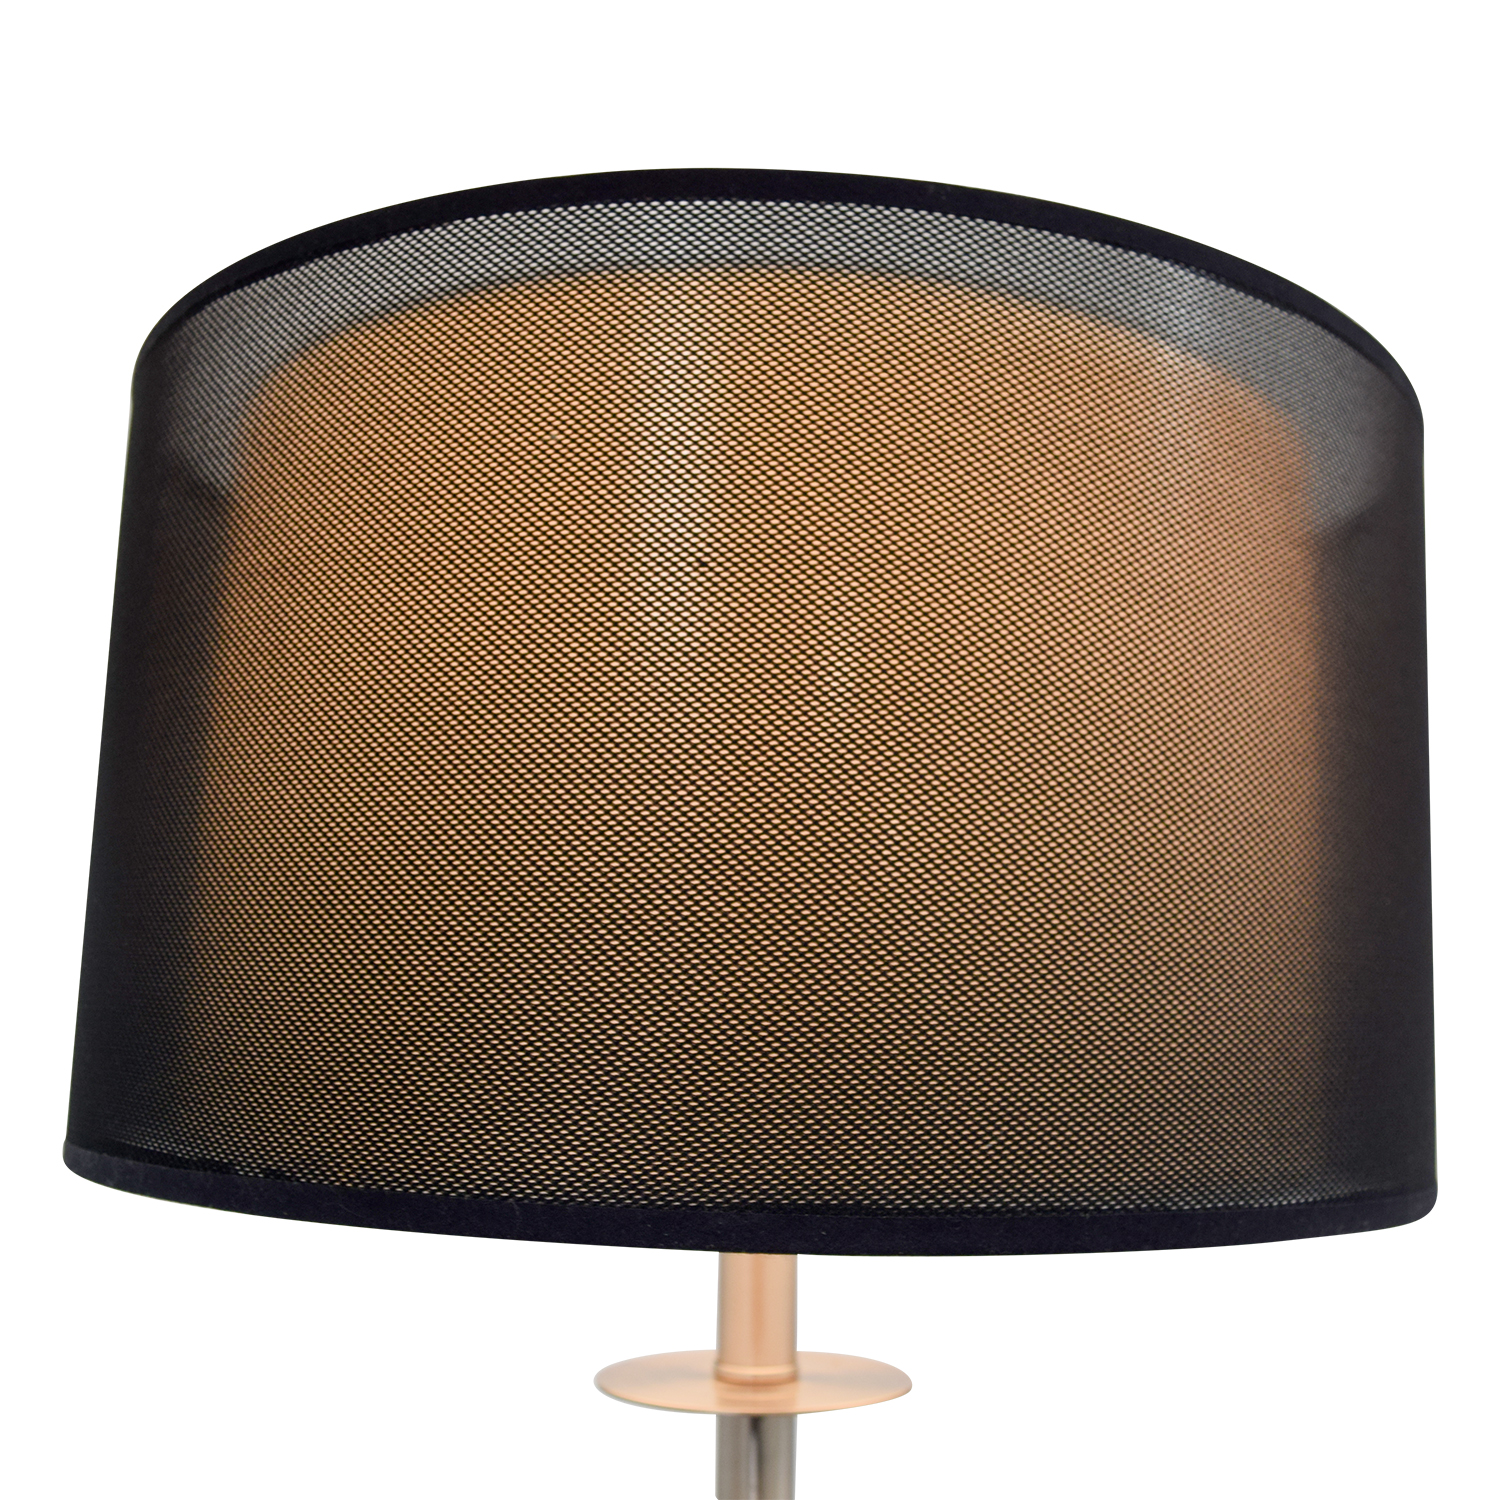 80 off metal floor lamp with black shade decor shop metal floor lamp with black shade lamps mozeypictures Images